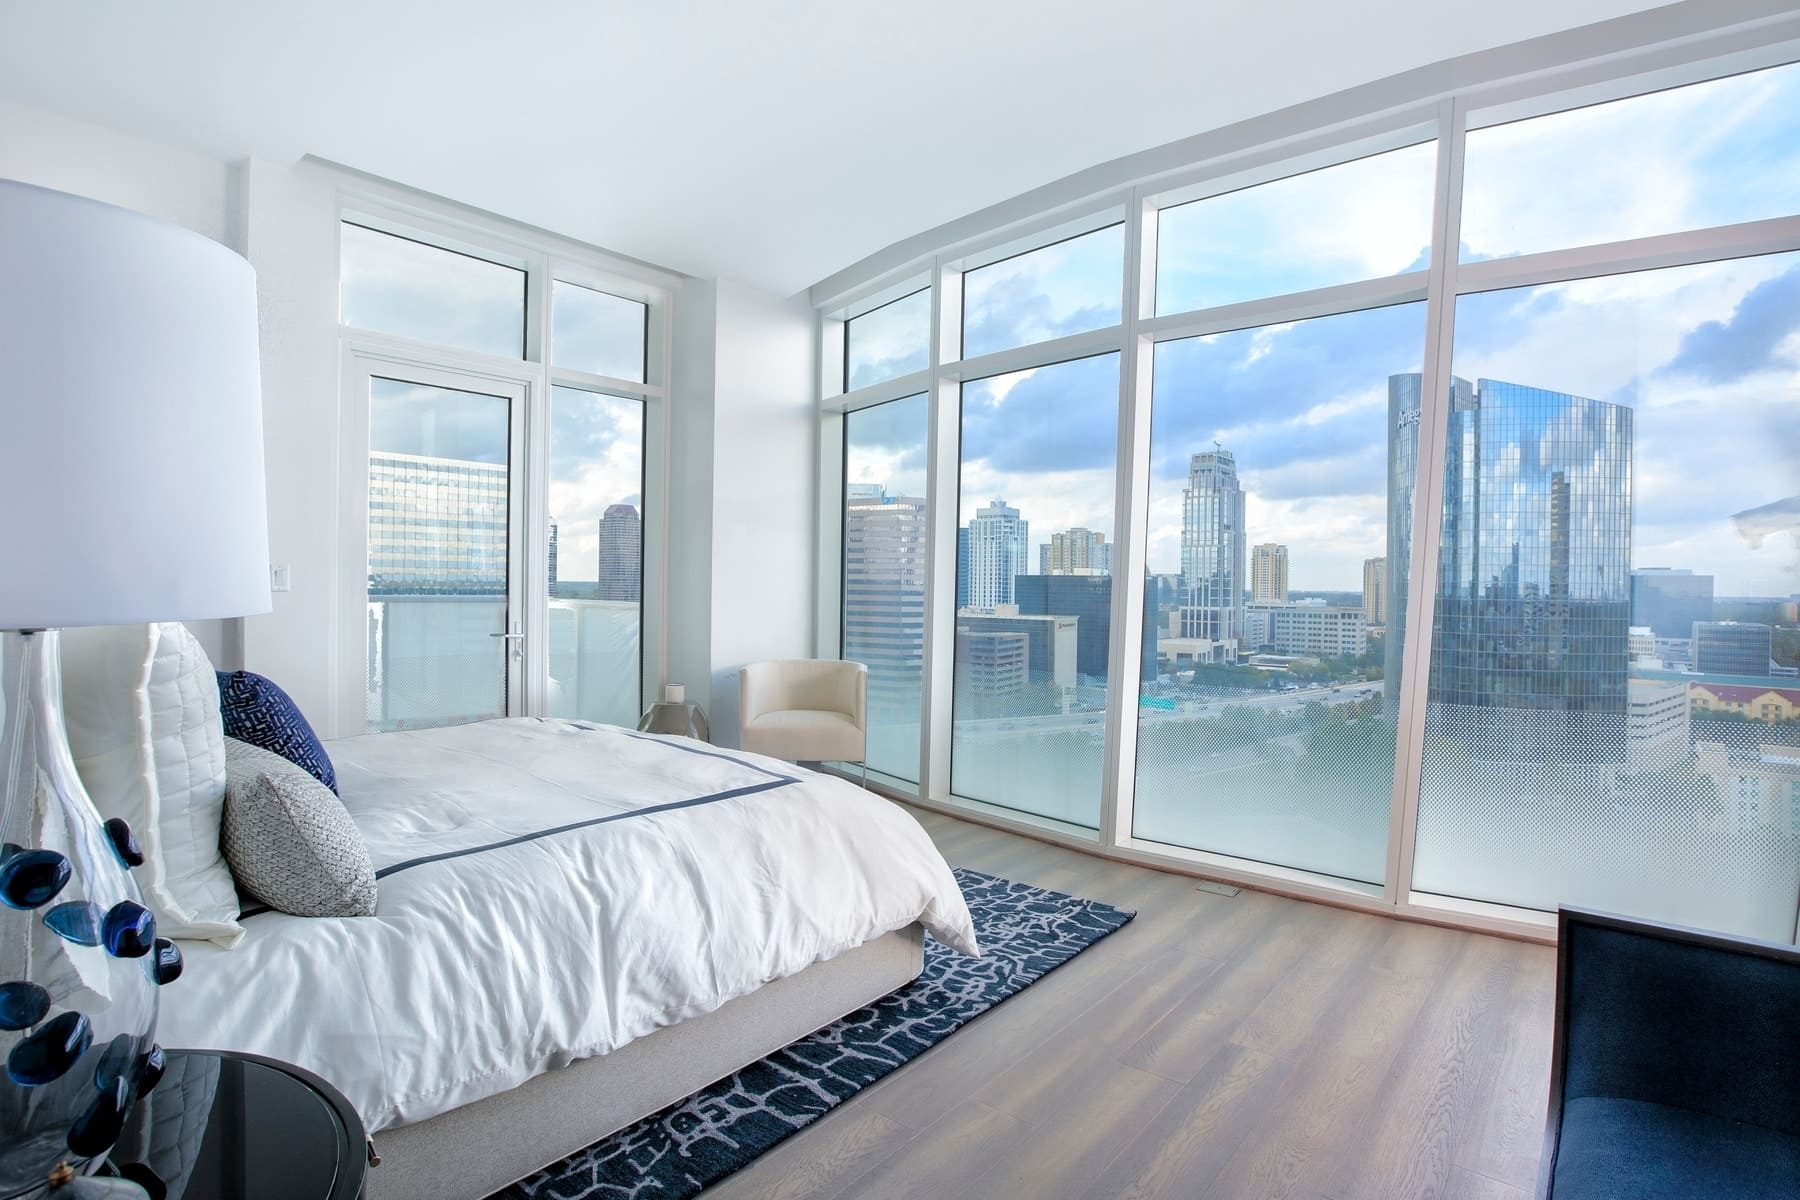 master bedroom with panoramic view of uptown houston from the model unit of arabella luxury condos in houston